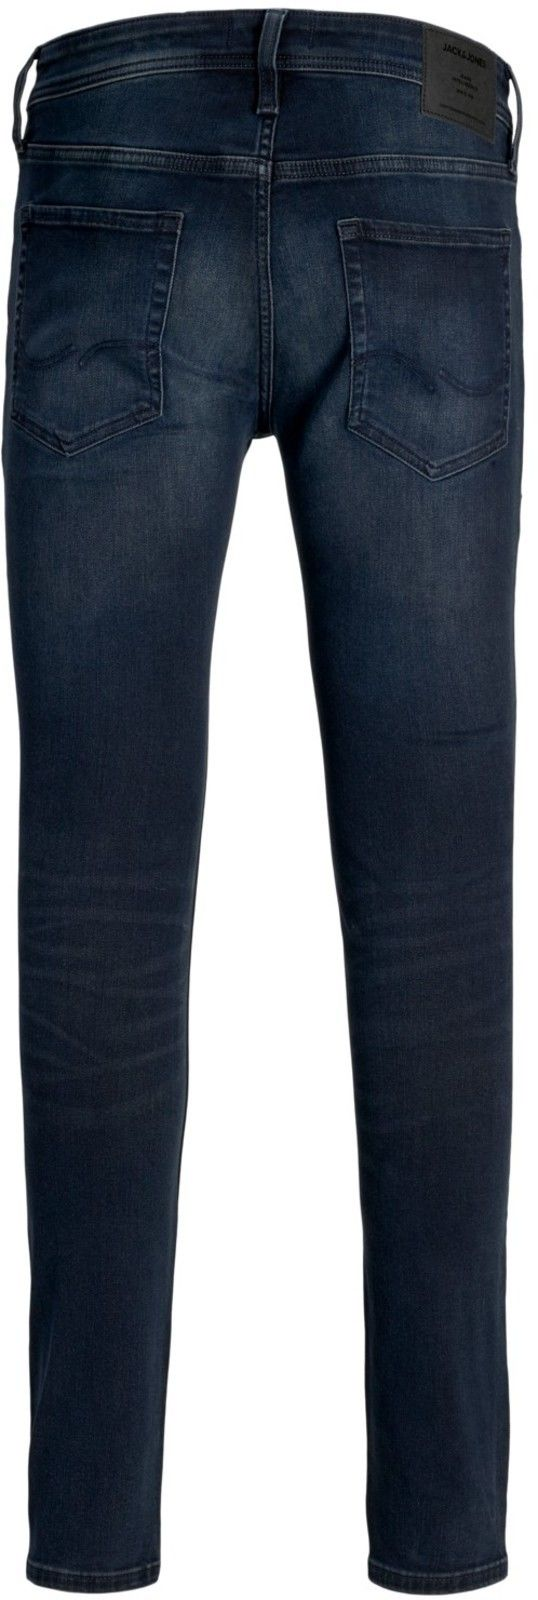 Jack & Jones Tim Original Slim Fit Denim Jeans Blue